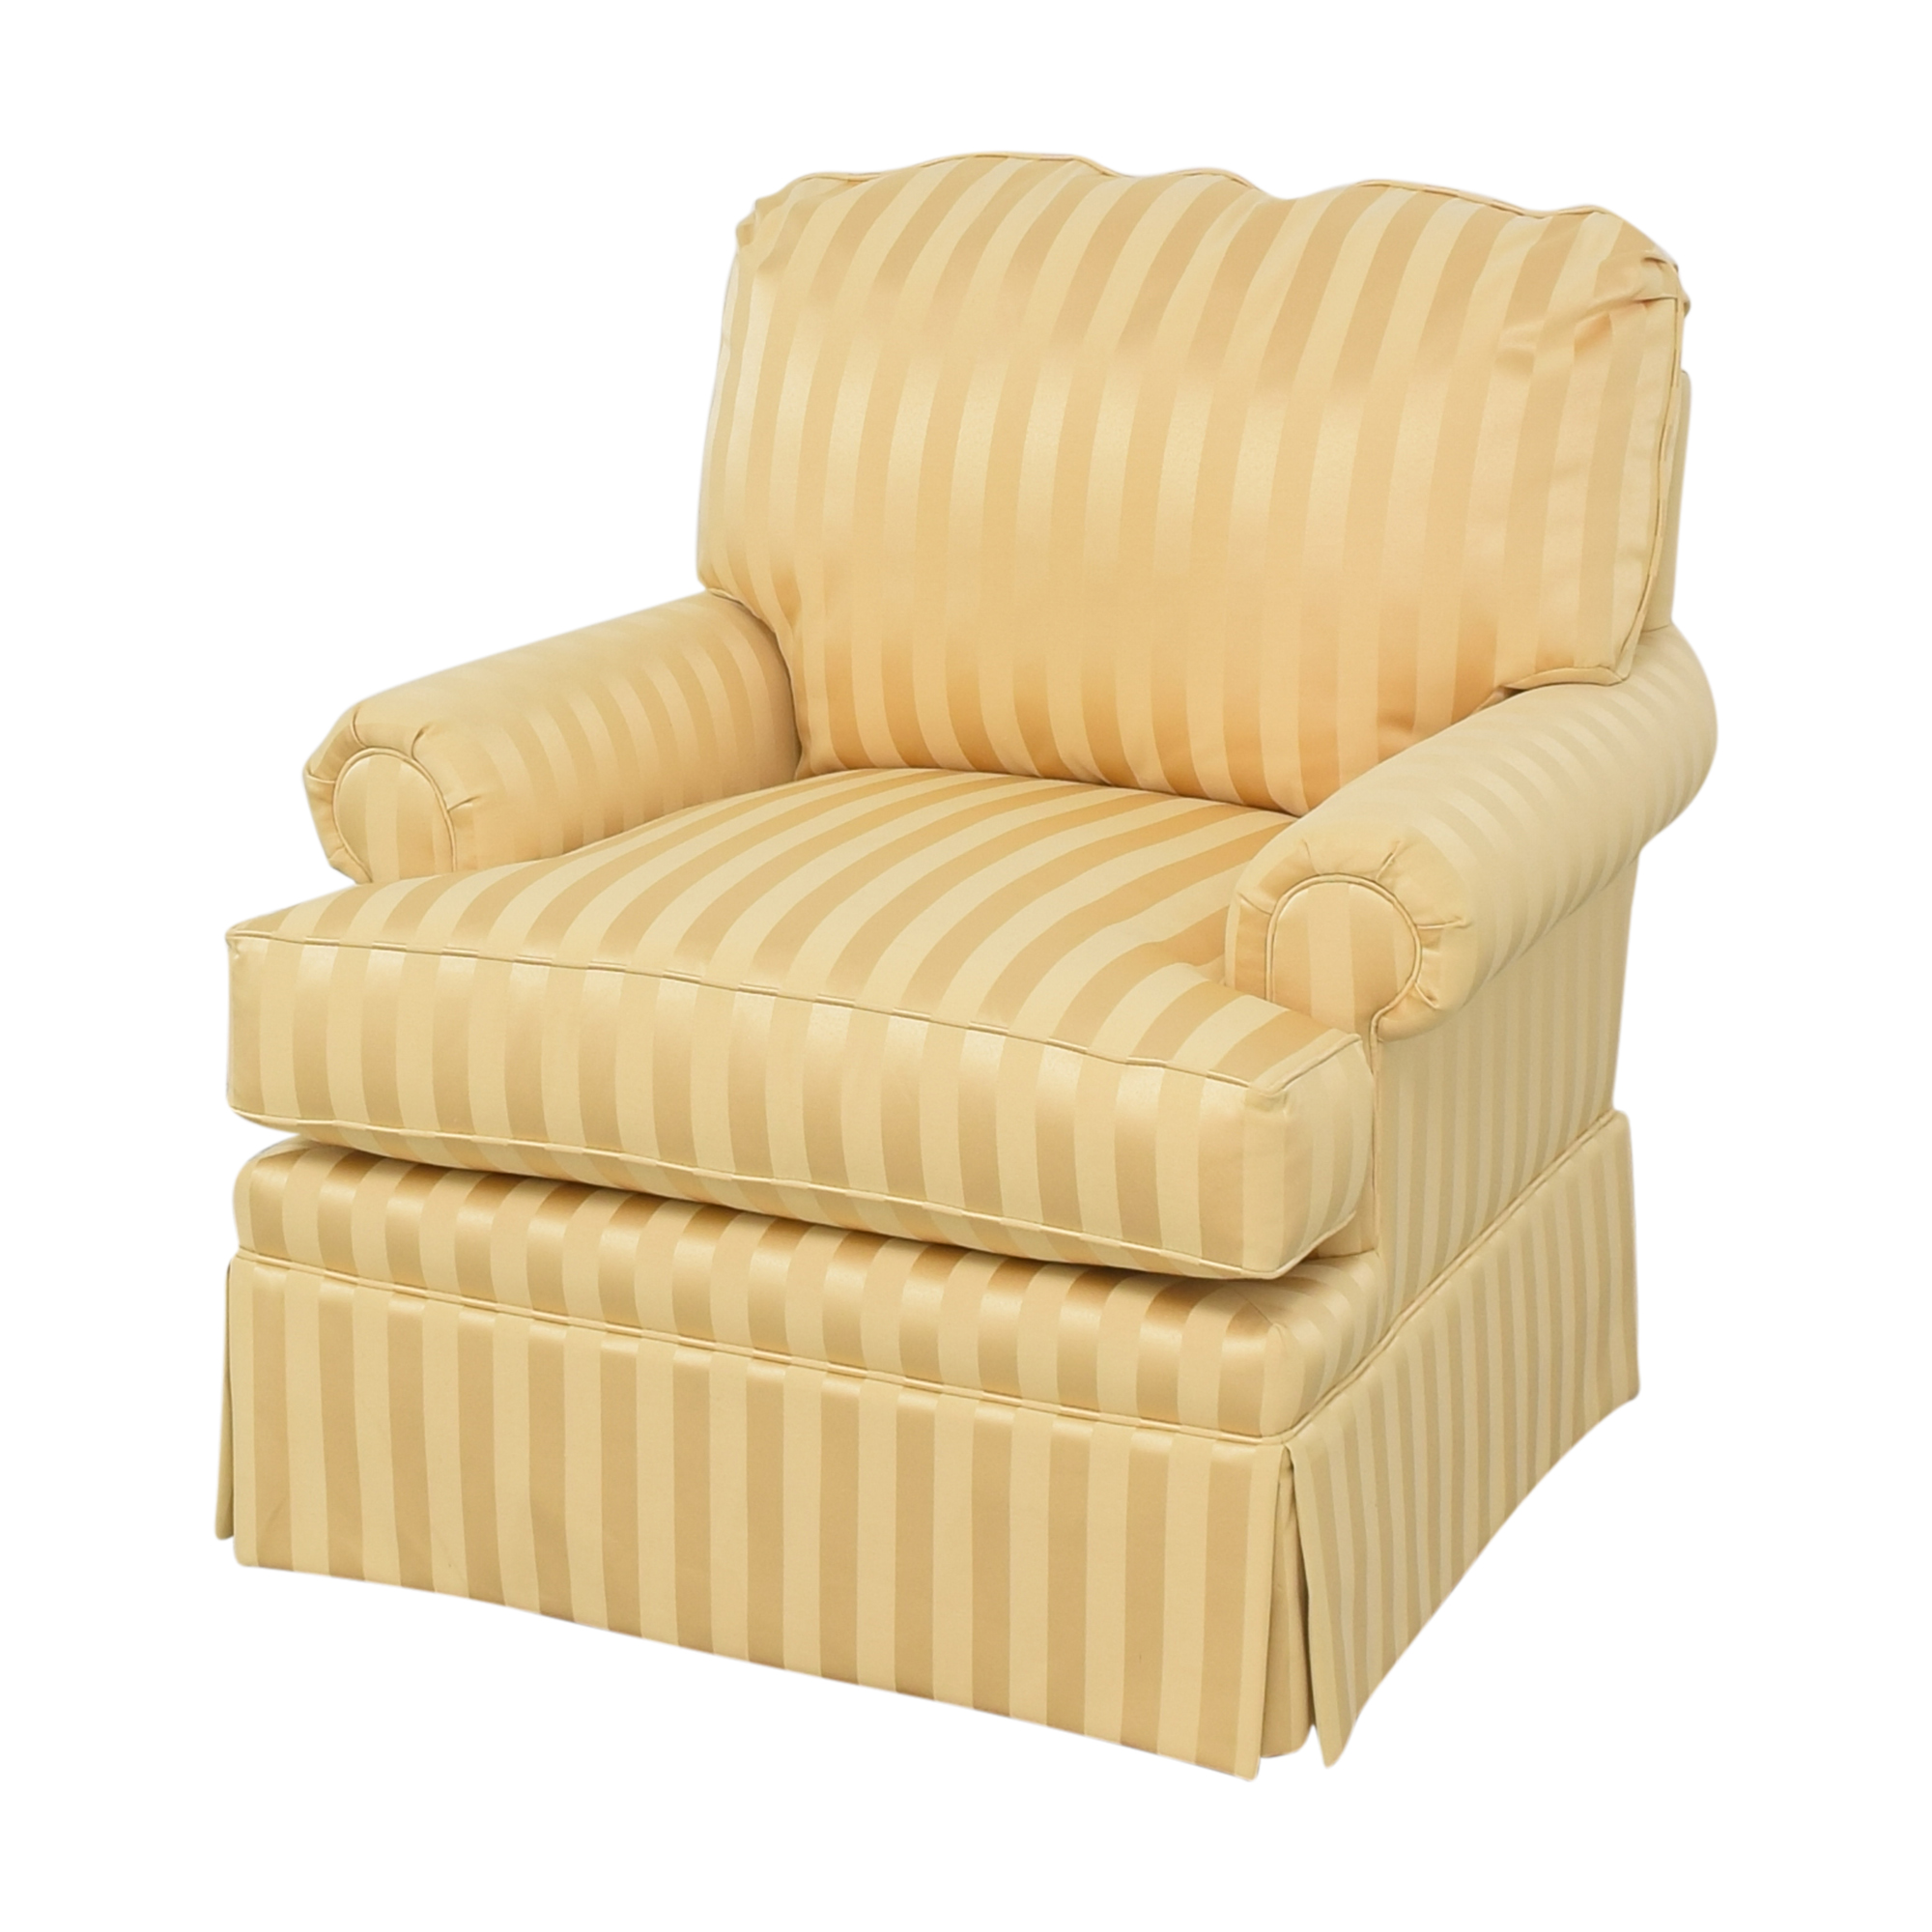 Thomasville Thomasville Stripe Accent Chair coupon